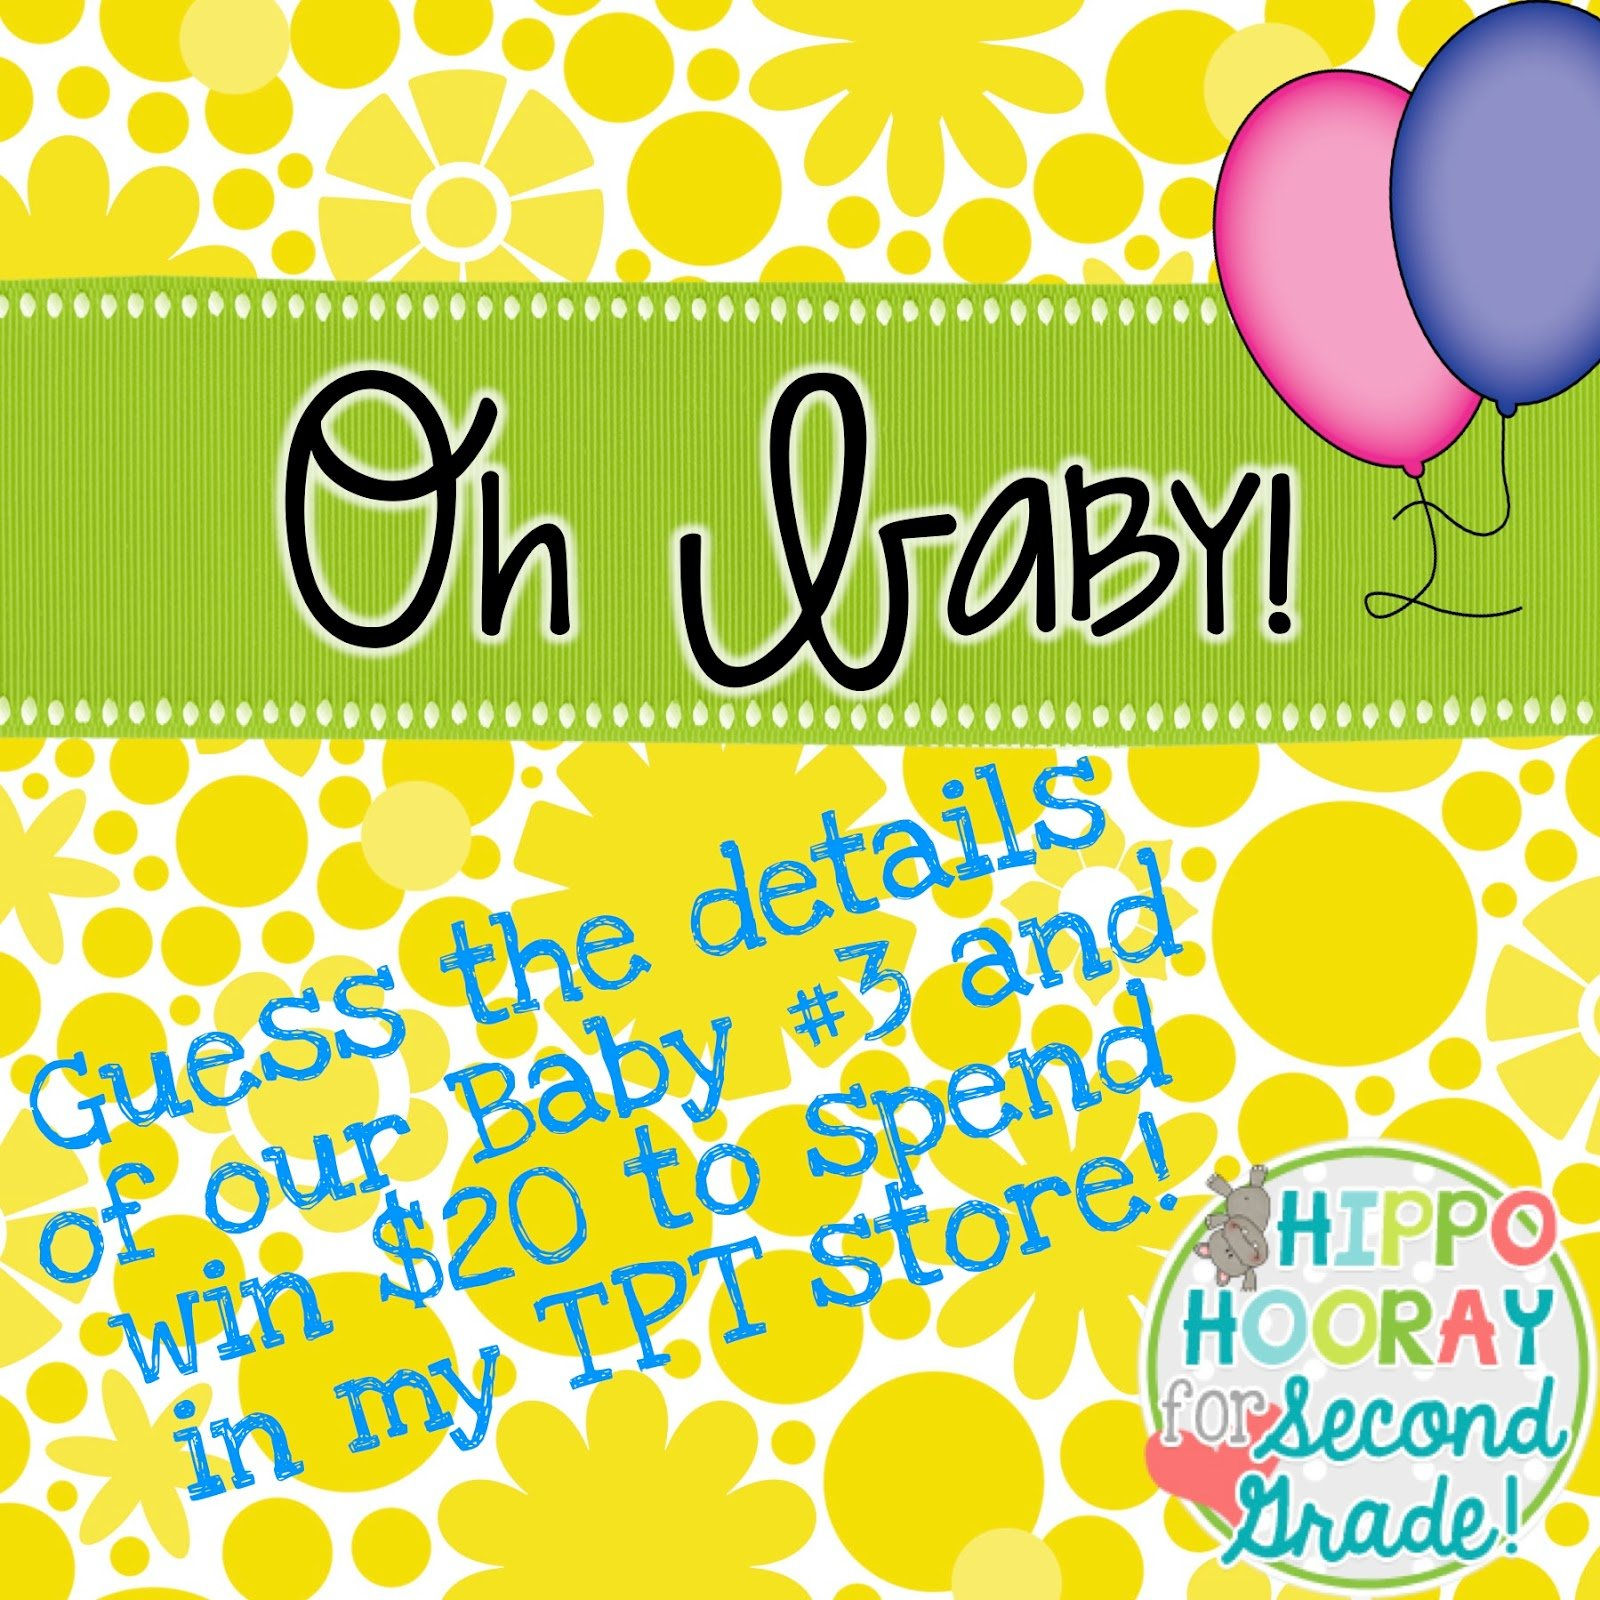 Oh Baby! It's Giveaway Time! - Hippo Hooray For Second Grade! Guess Baby Birth Details